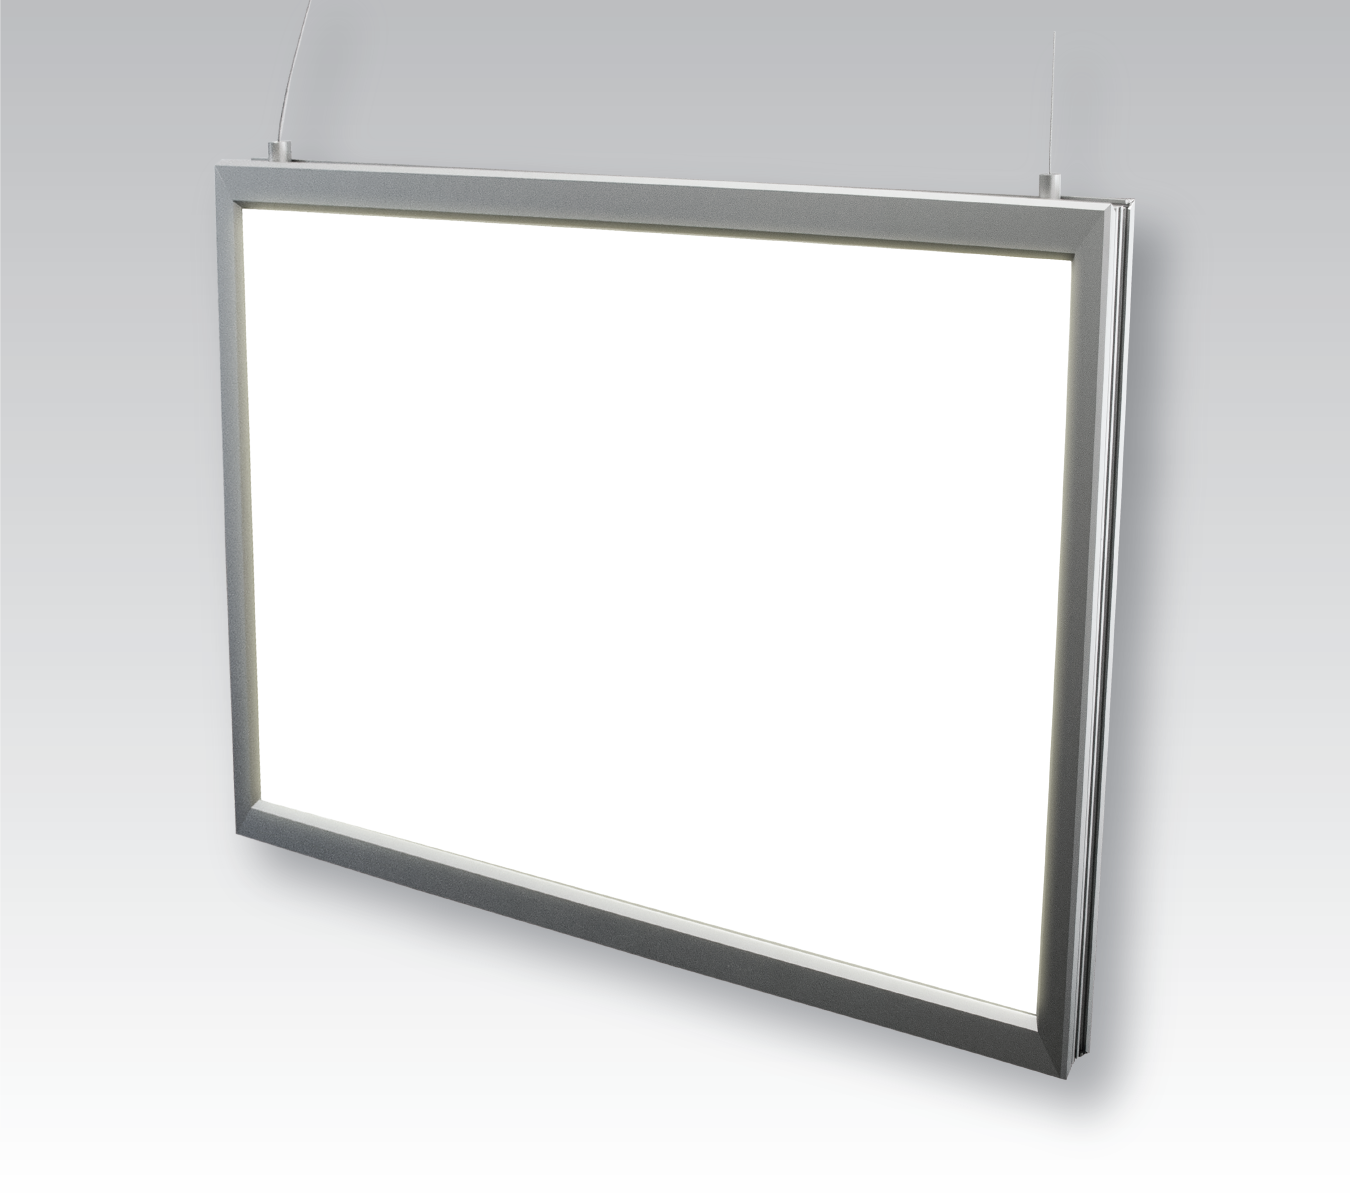 Lumi Light Box #15 double sided LED light box, hanging